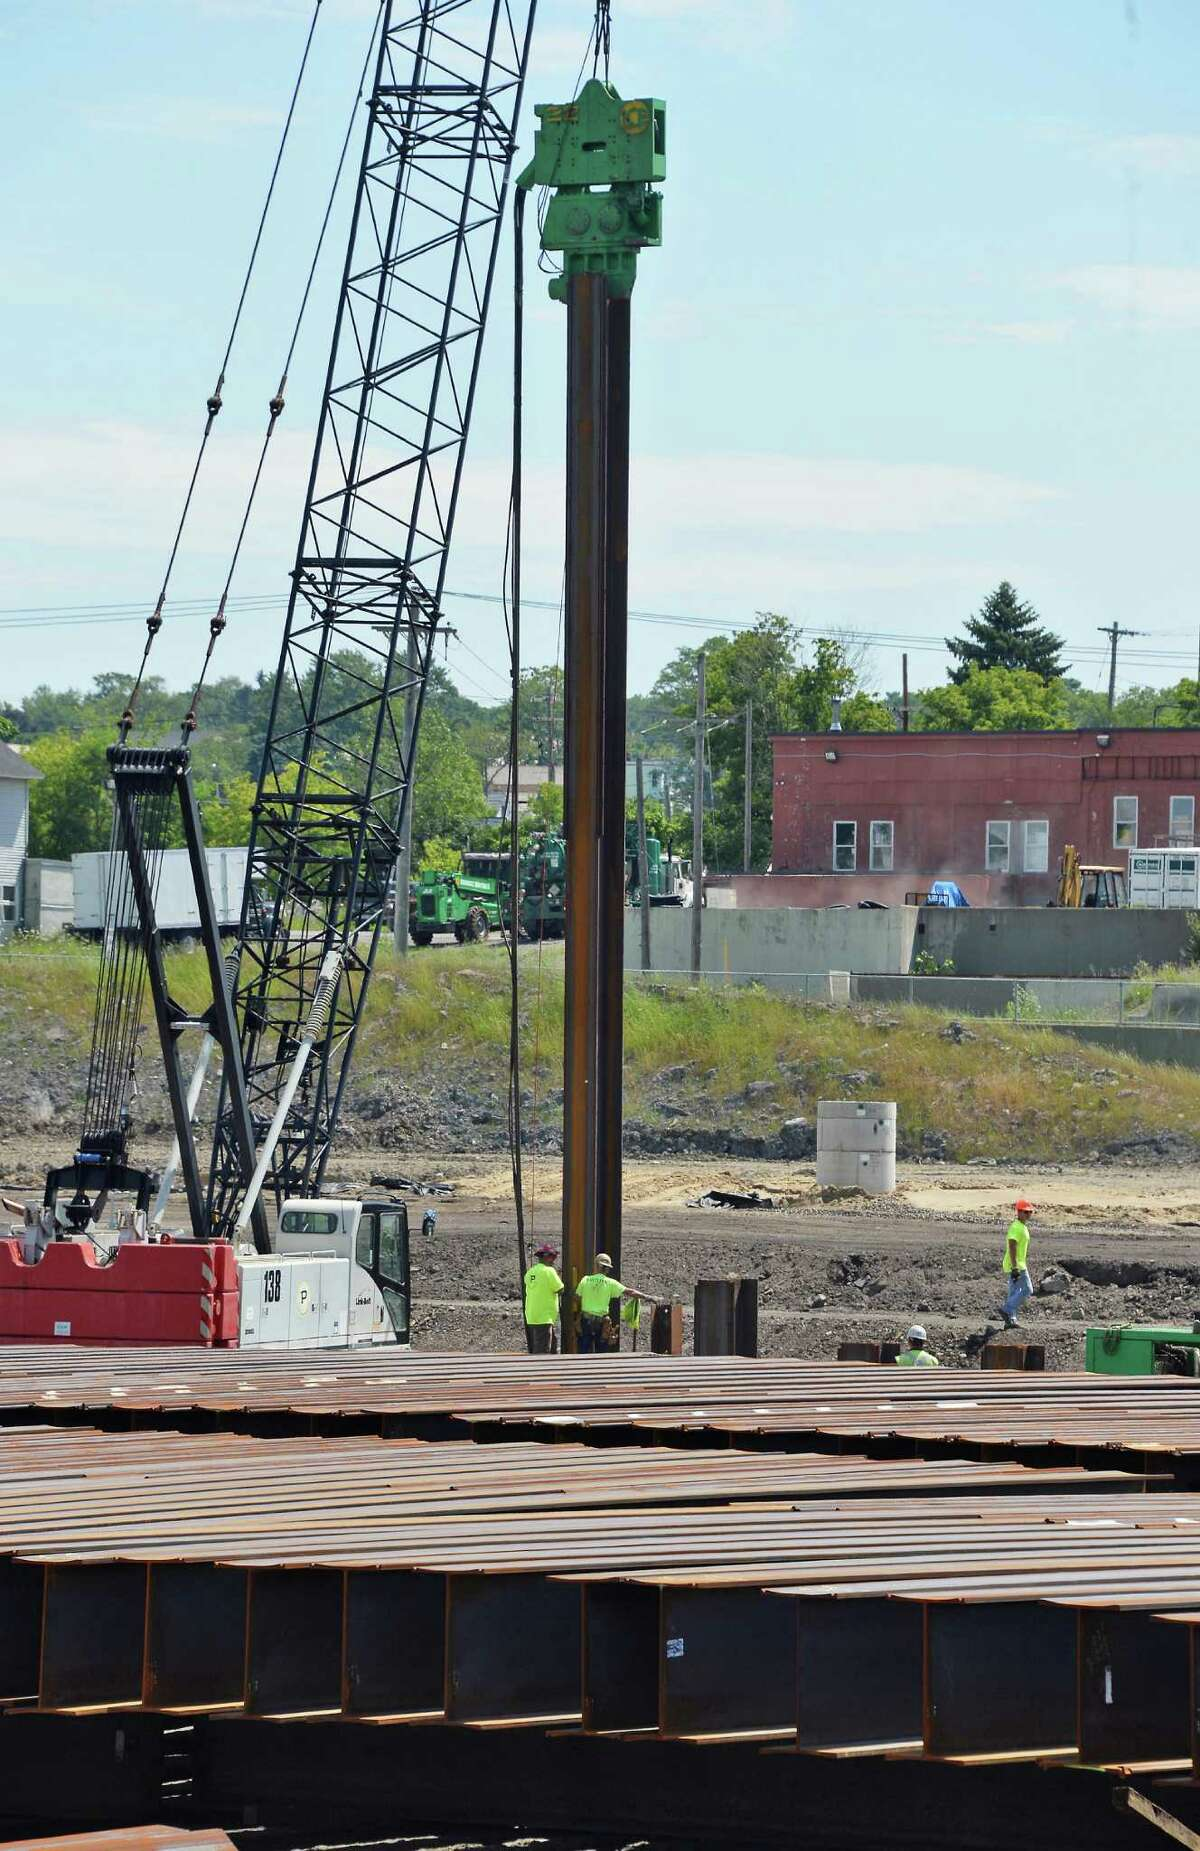 Crews drive 55-foot steel harbor piles to construct Mohawk Harbor at the Rivers Casino site on Erie Blvd. Tuesday July 21, 2015 in Schenectady, NY. (John Carl D'Annibale / Times Union)